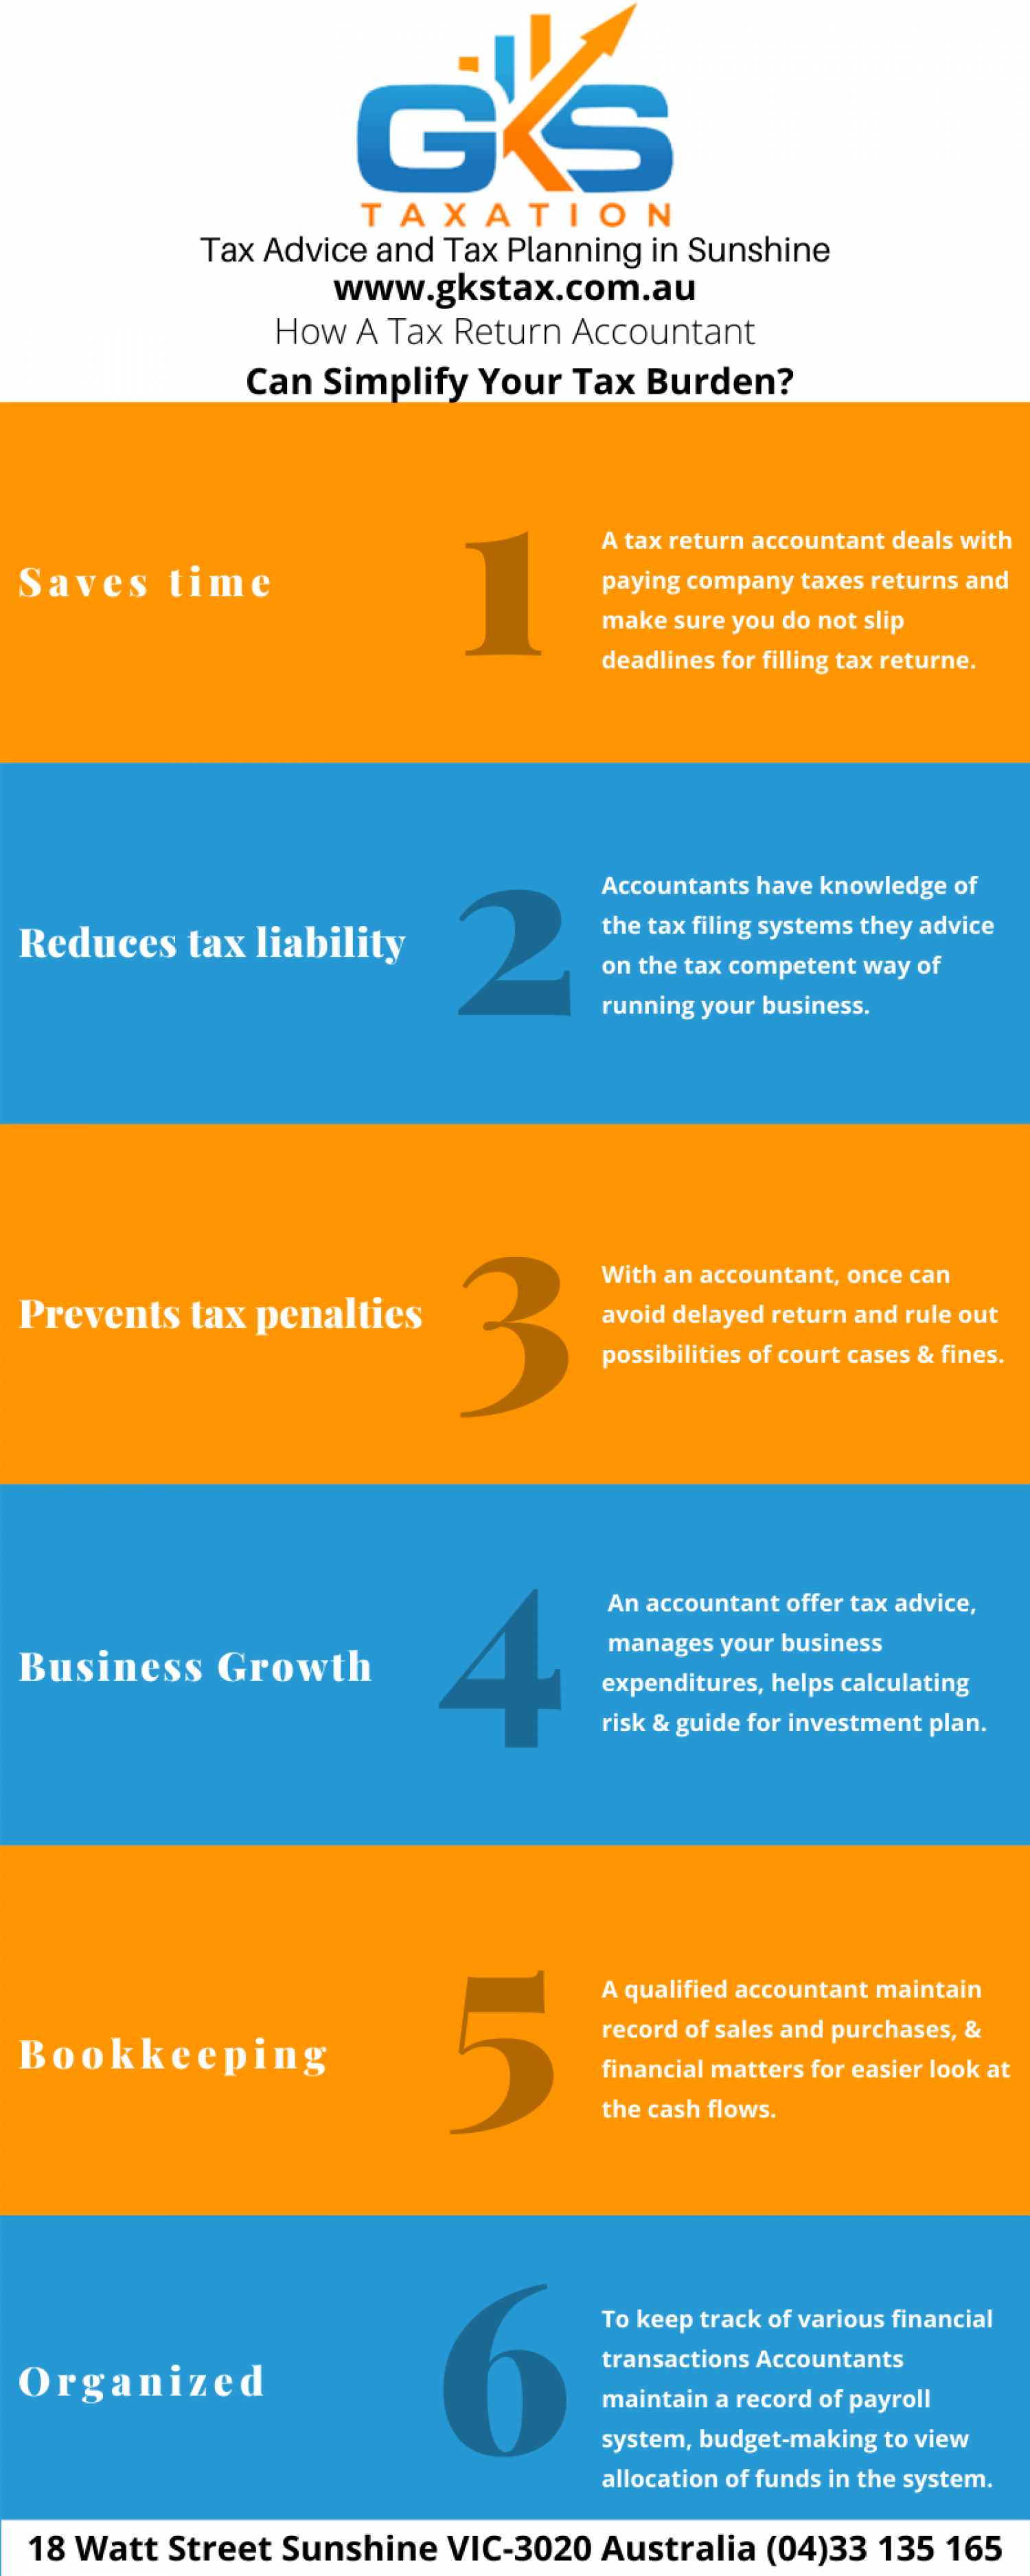 How A Tax Return Accountant Can Simplify Your Tax Burden Infographic